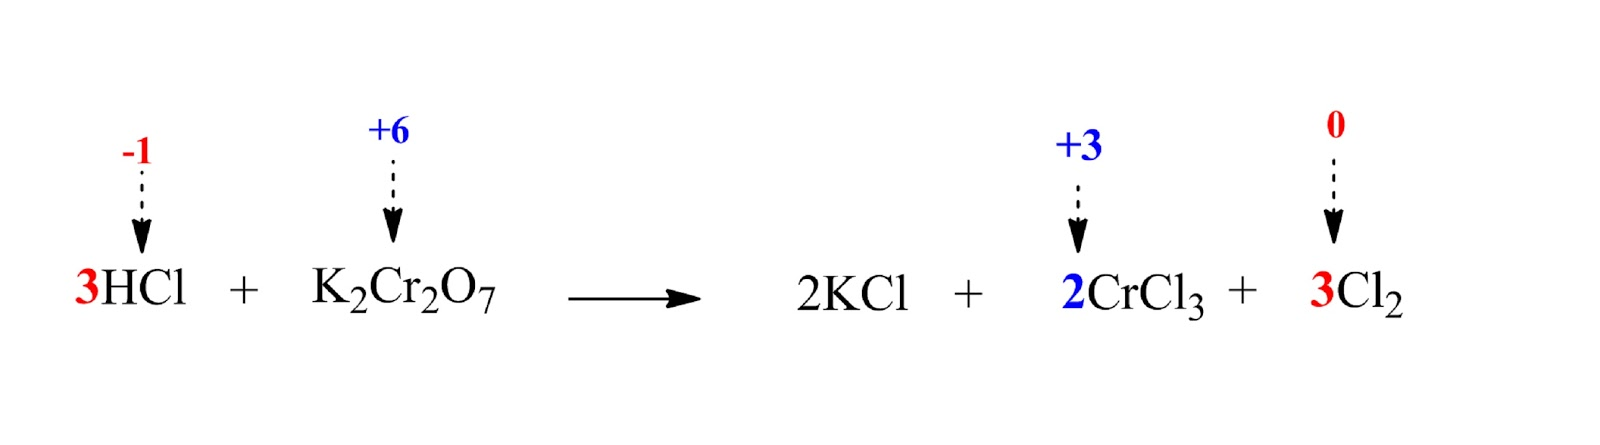 unbalanced reaction between HCl and K2Cr2O7 including oxidation number difference and coefficients and K coefficients